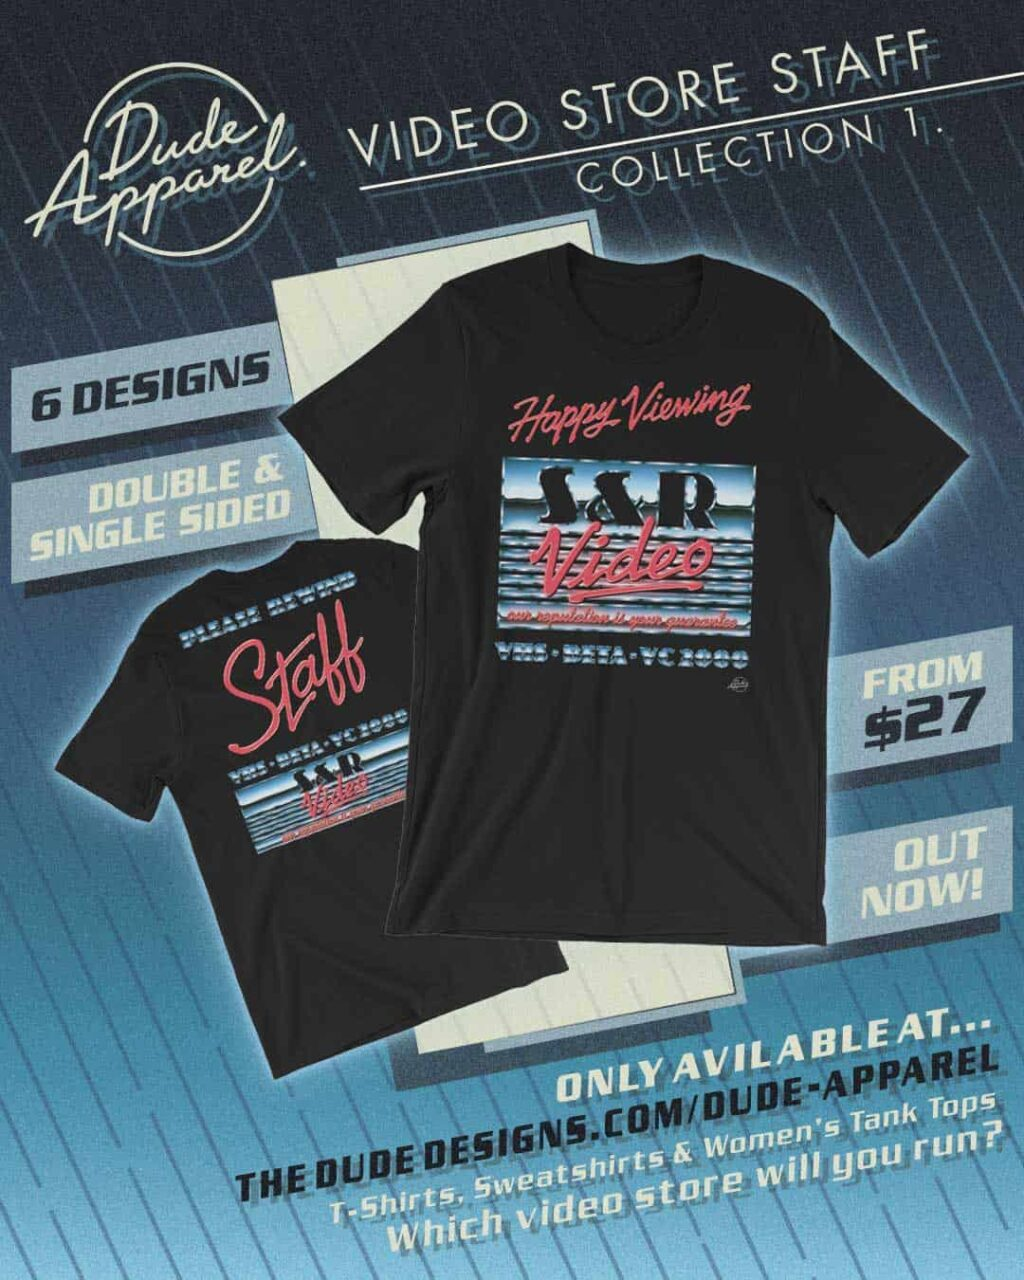 Dude Apparel VHS Video store 1 1024x1280 - DUDE APPAREL Launches the Perfect Retro Gear for Nostalgic Film Fans